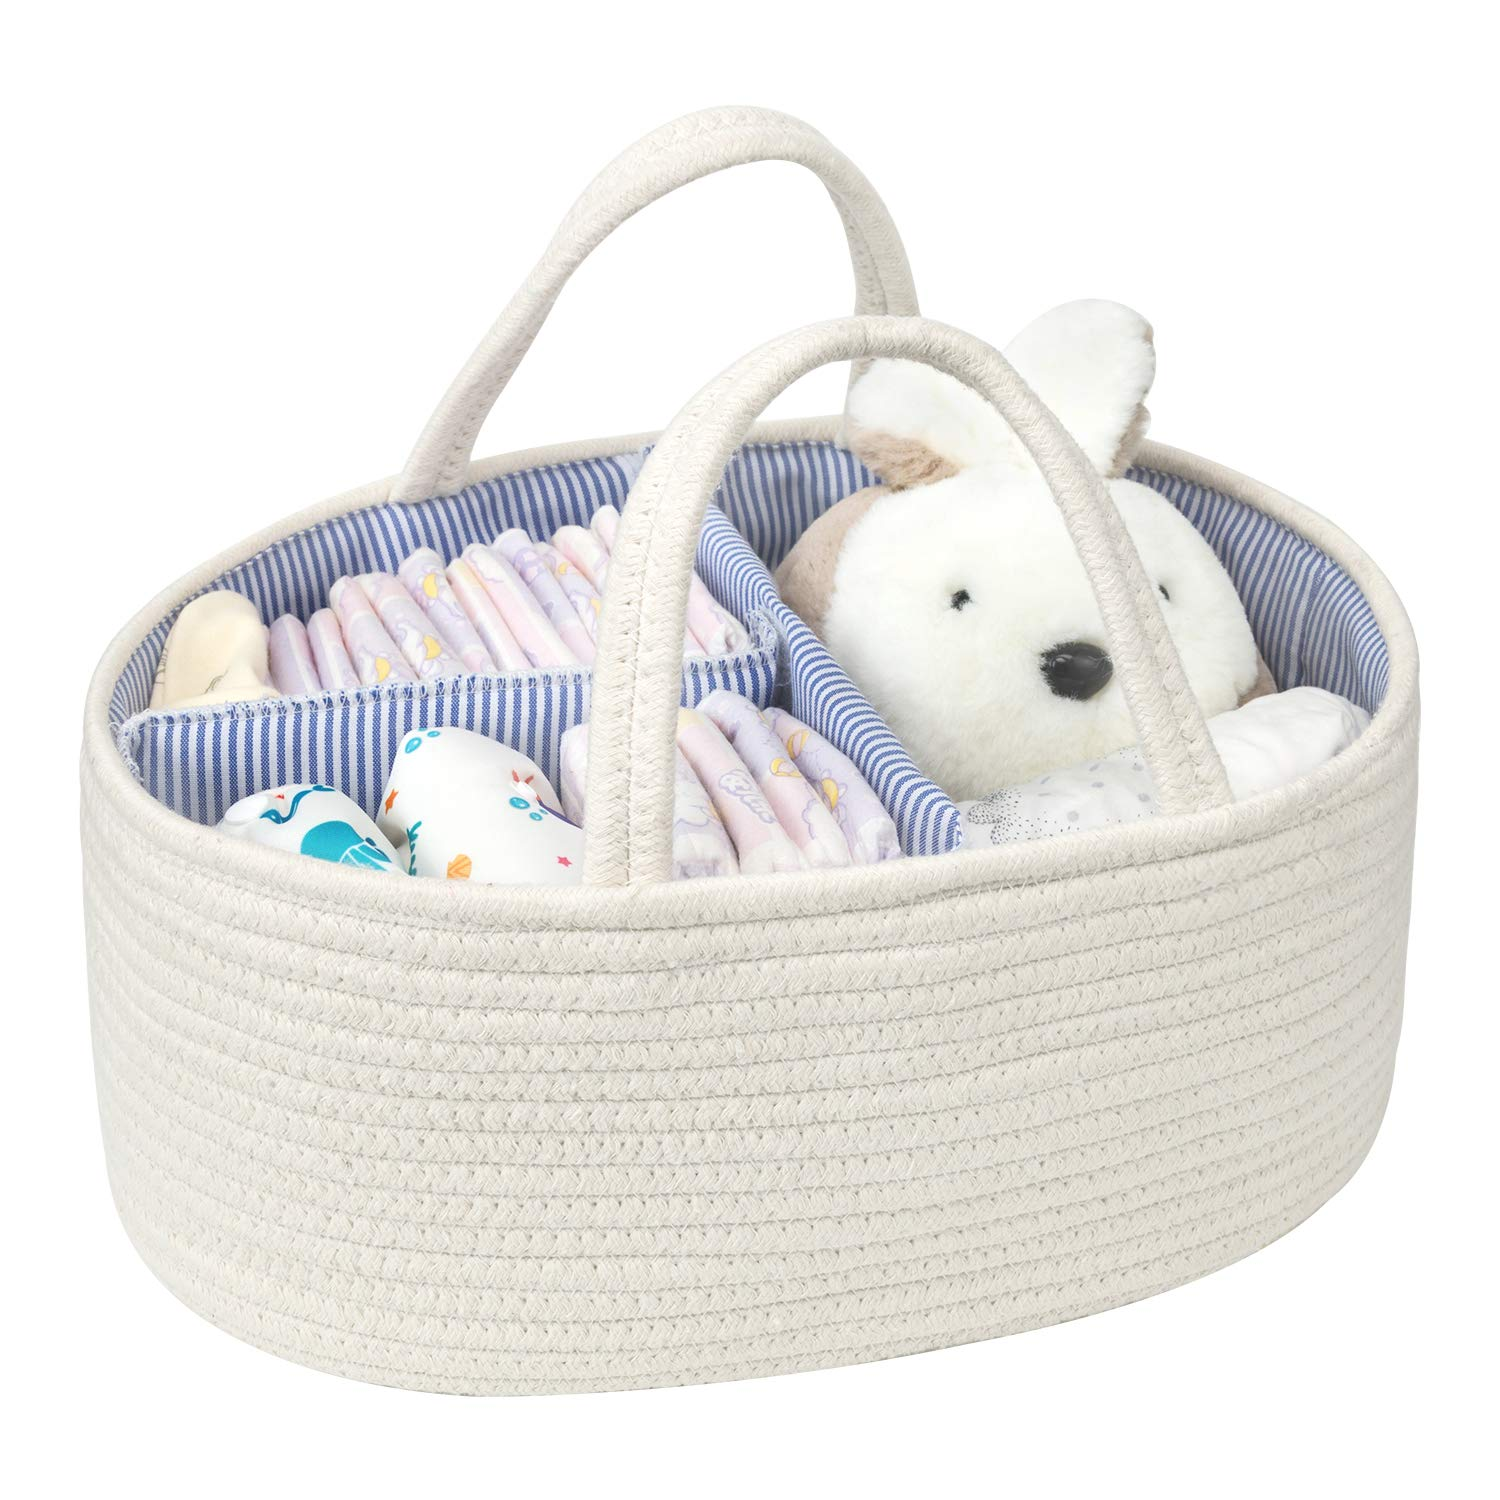 Baby Diaper Caddy Organizer Cotton Rope Storage Basket Nursery Storage Bin for Changing Table and Car by UBBCARE